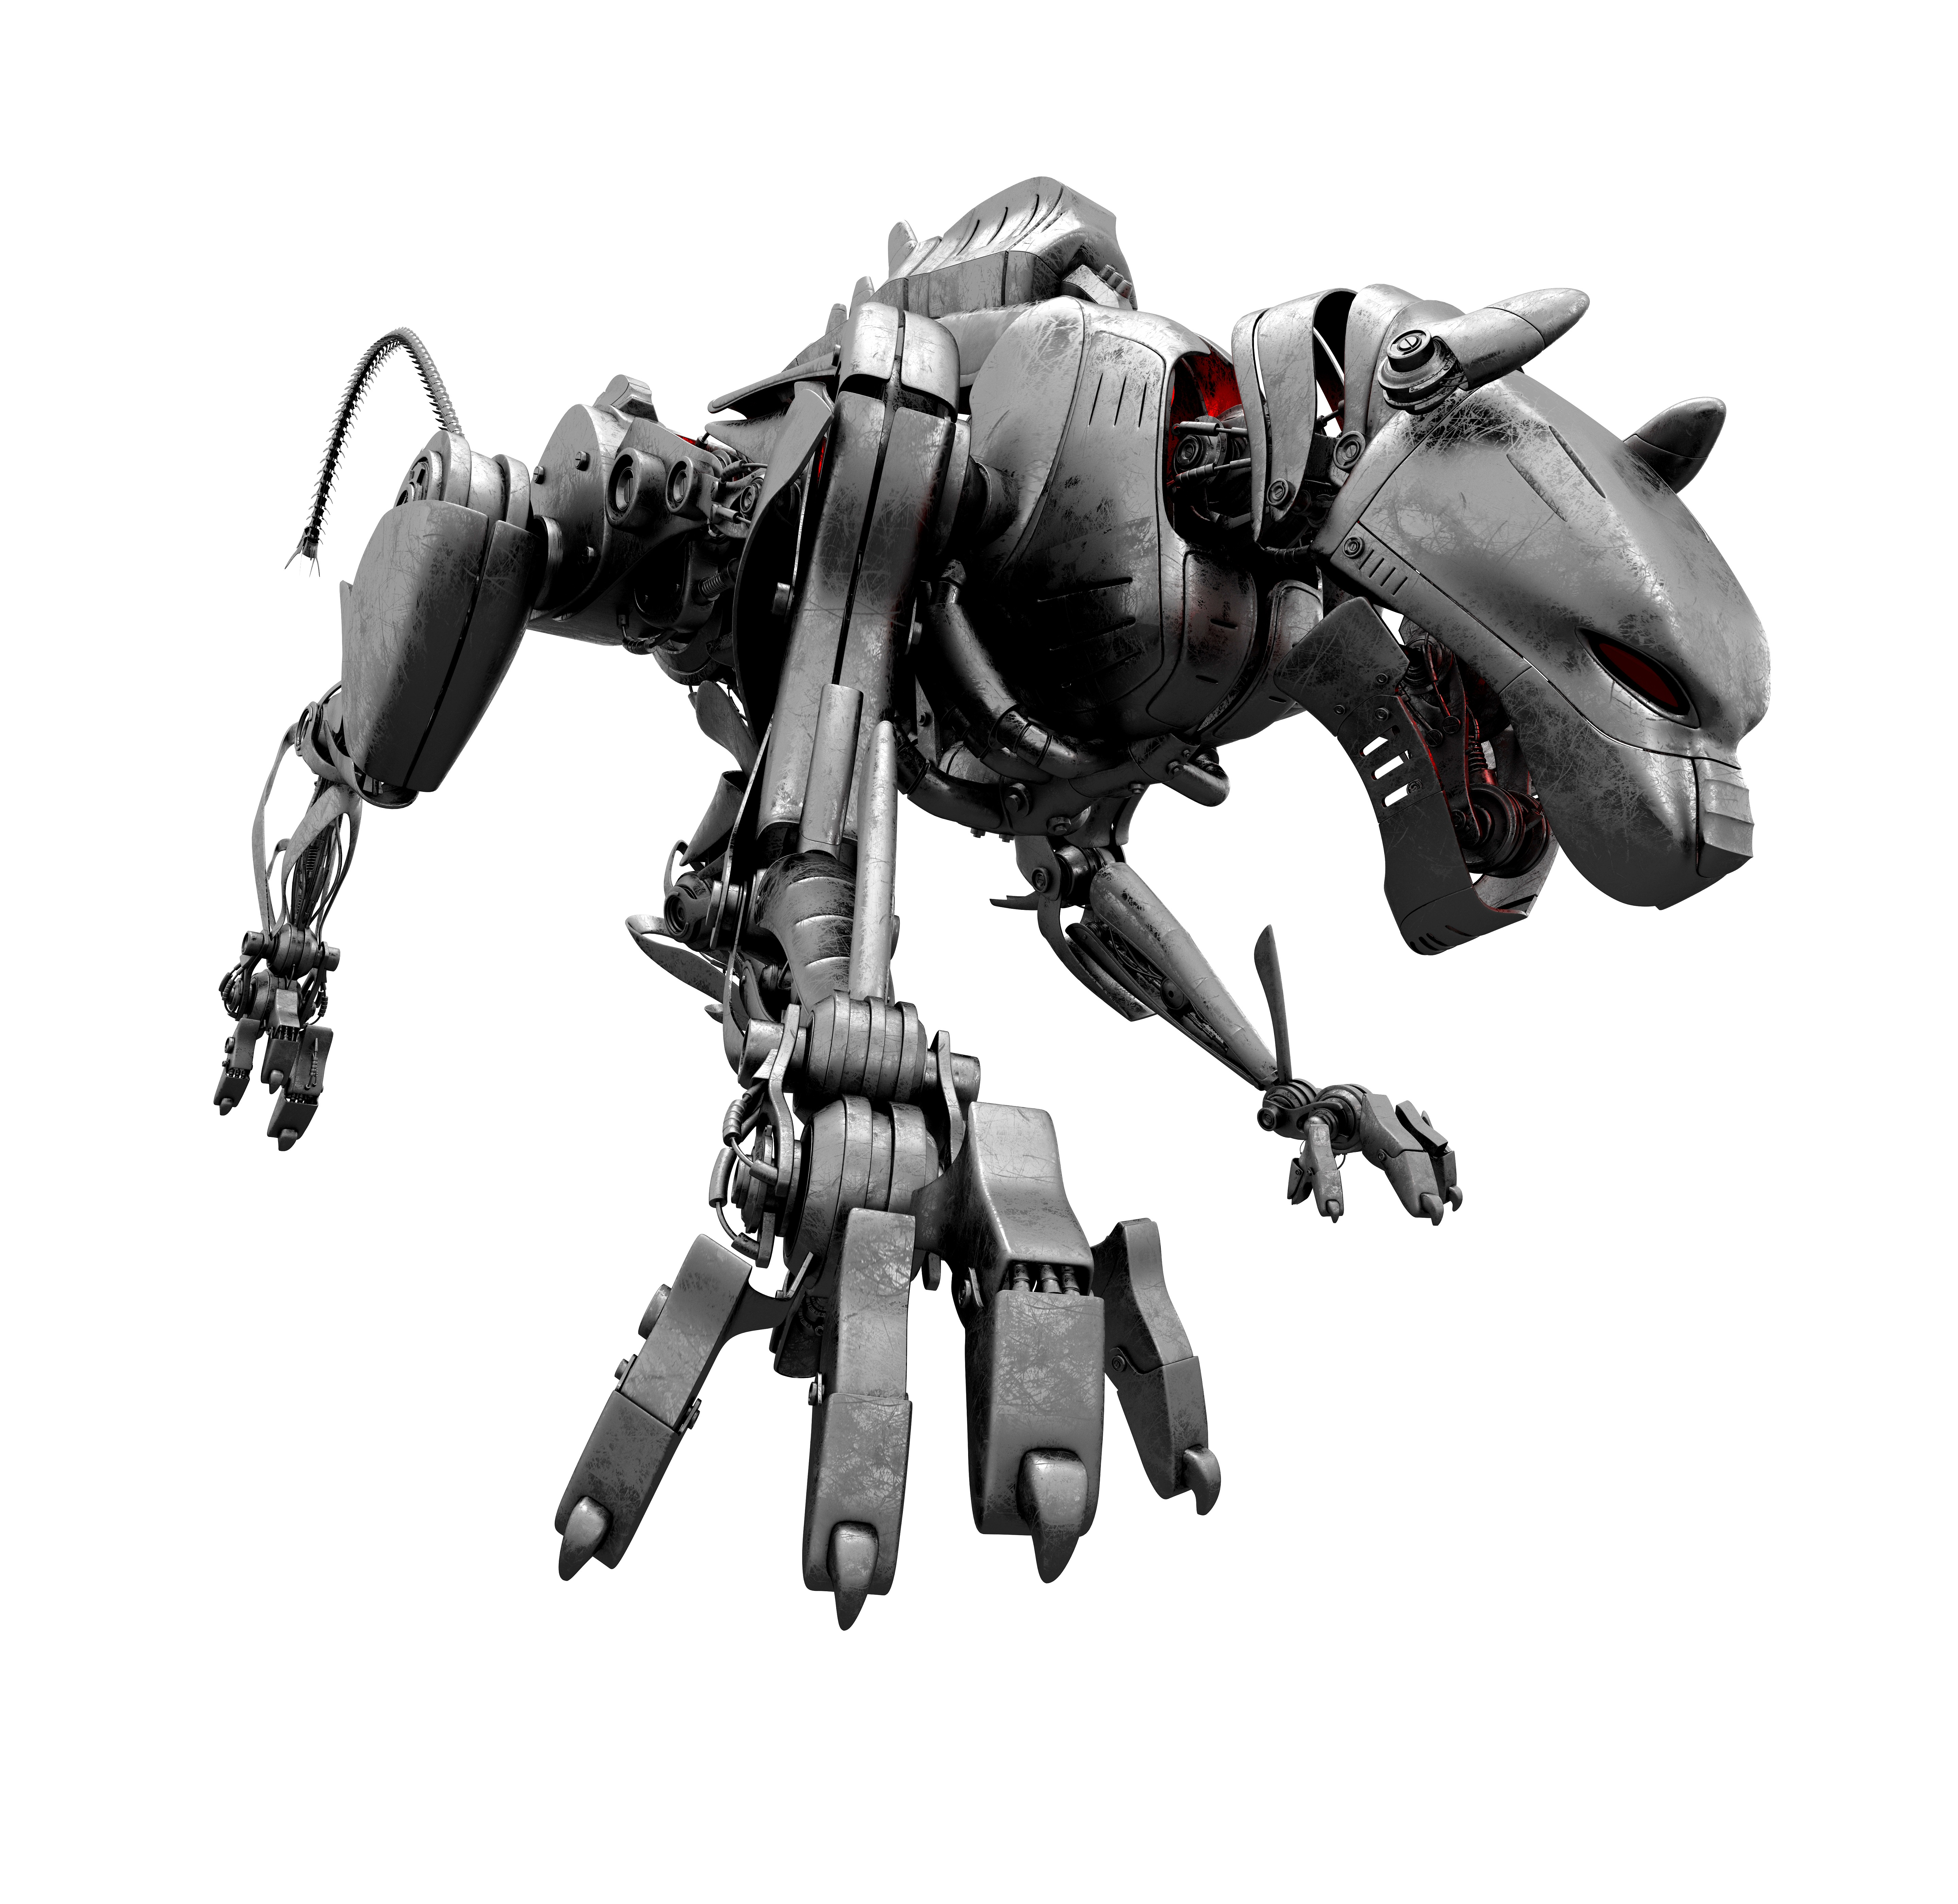 Panthersrobotics Licensed For Non Commercial Use Only